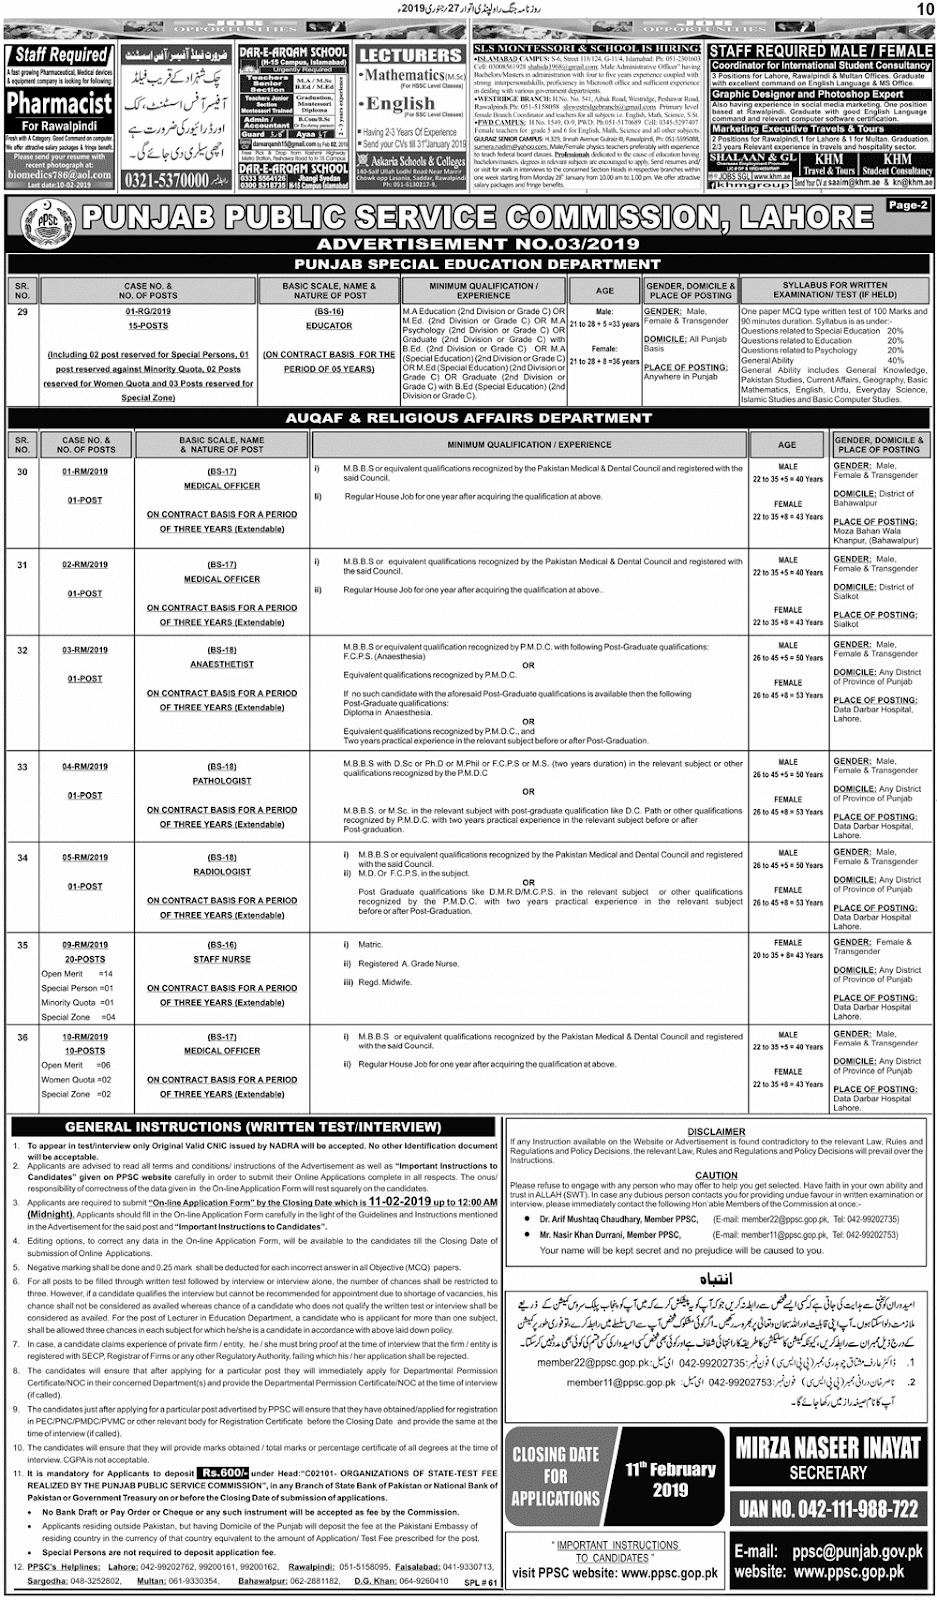 PPSC Advertisement 03/2019 Page No. 2/2